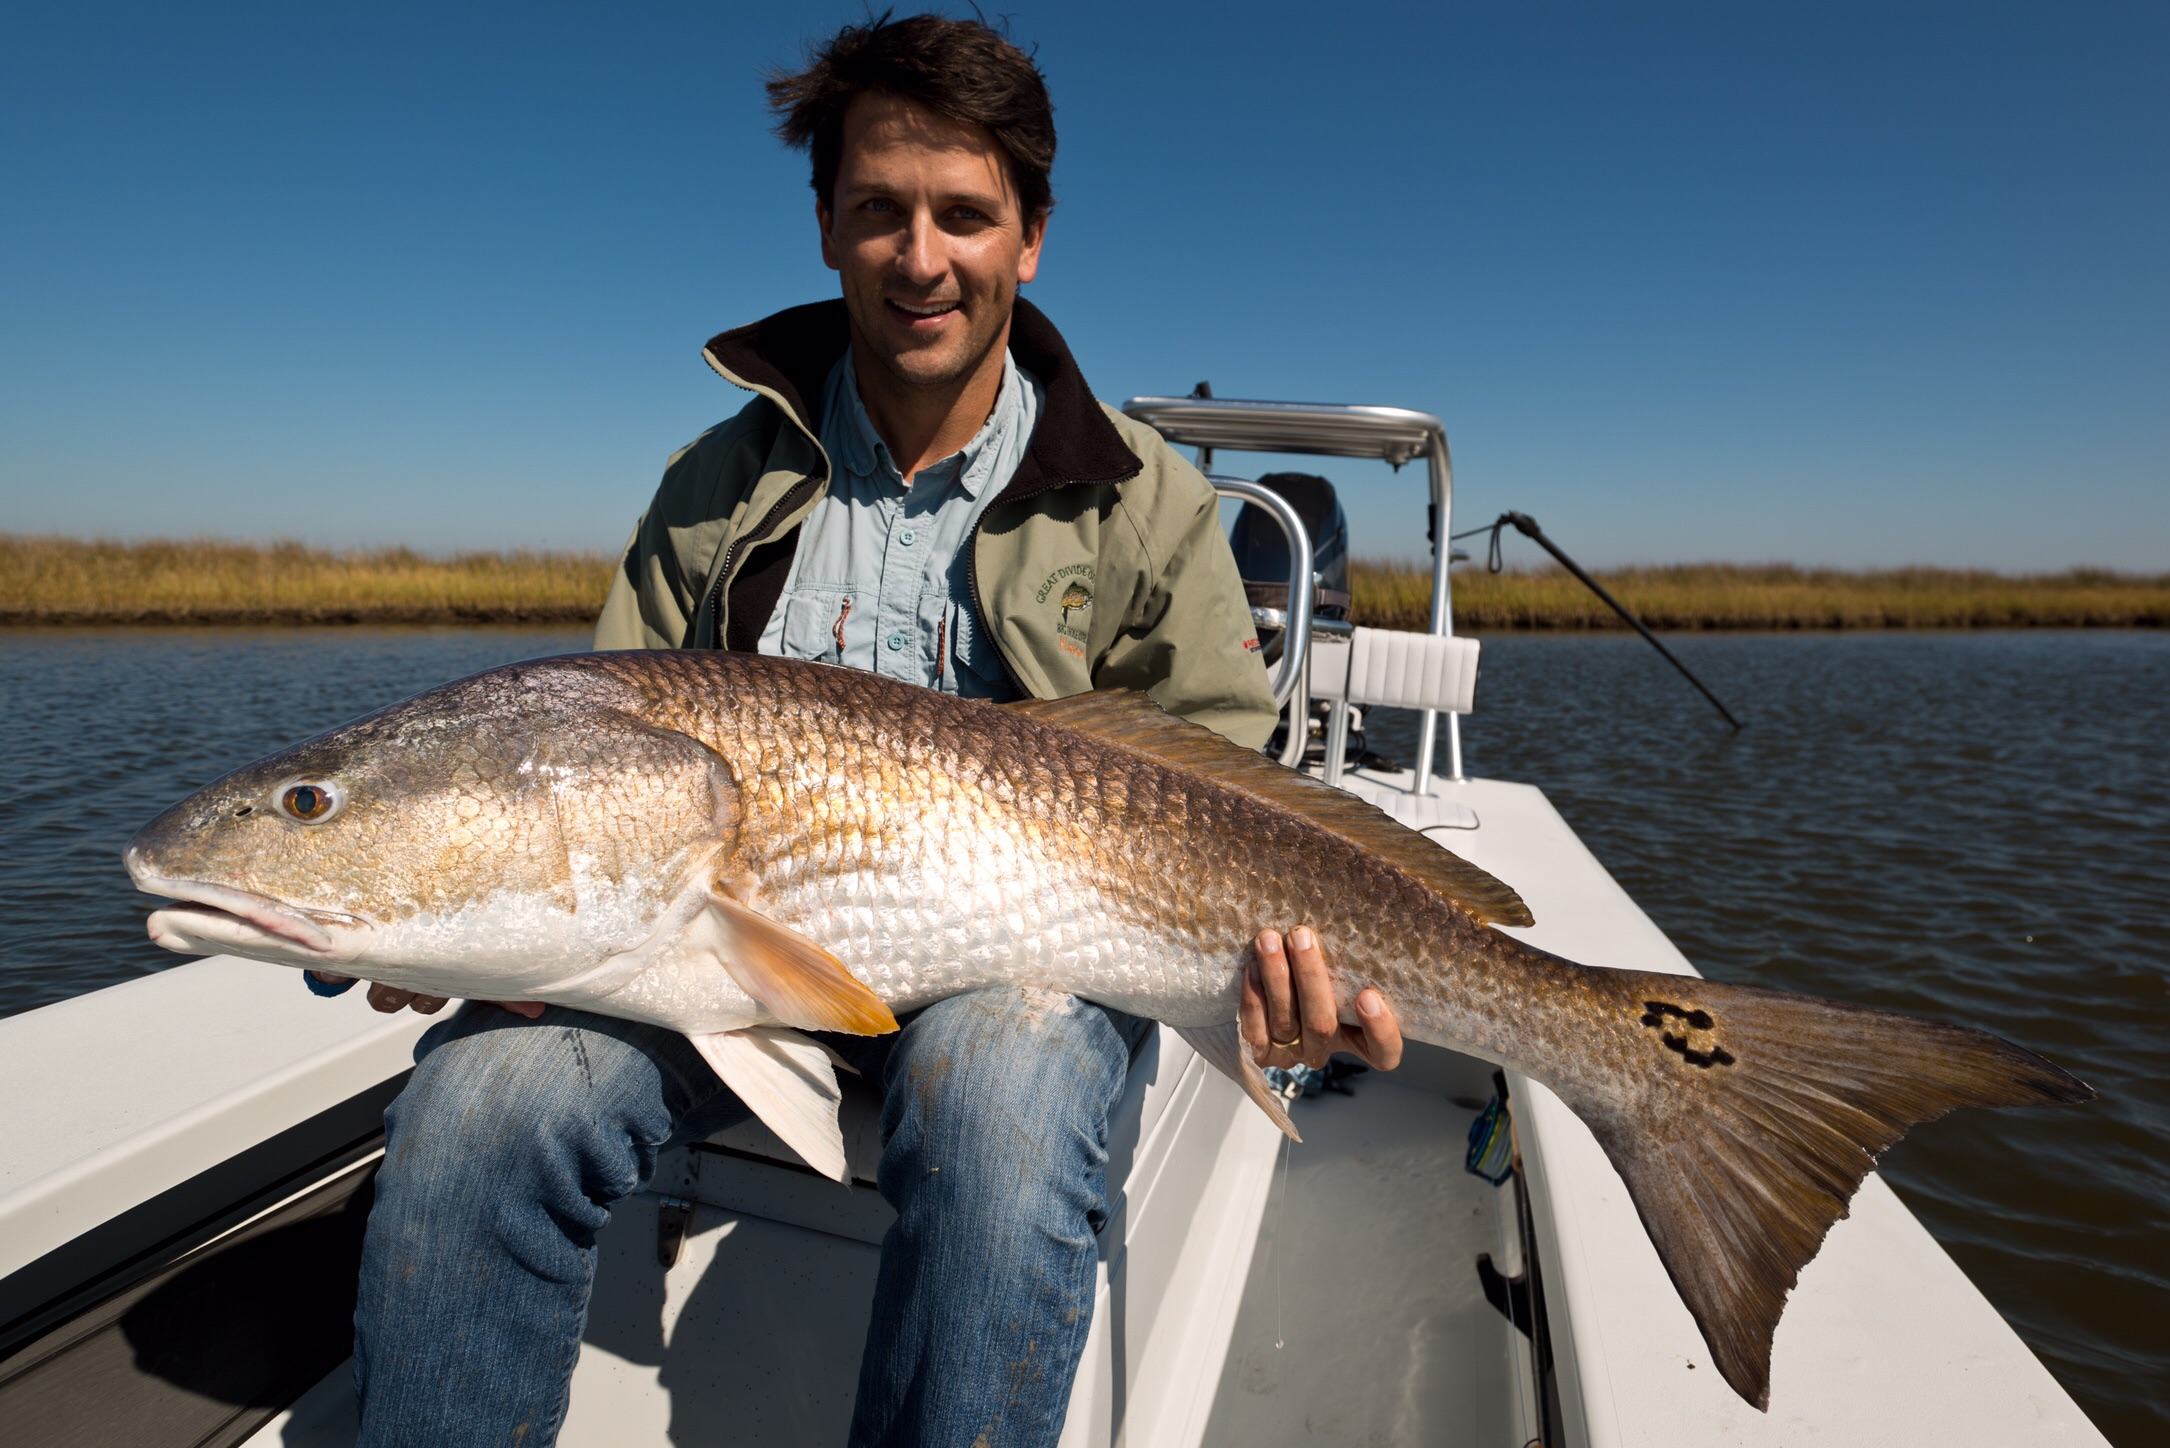 fly-fishing-redfish-new-orleans-louisiana-marsh-22